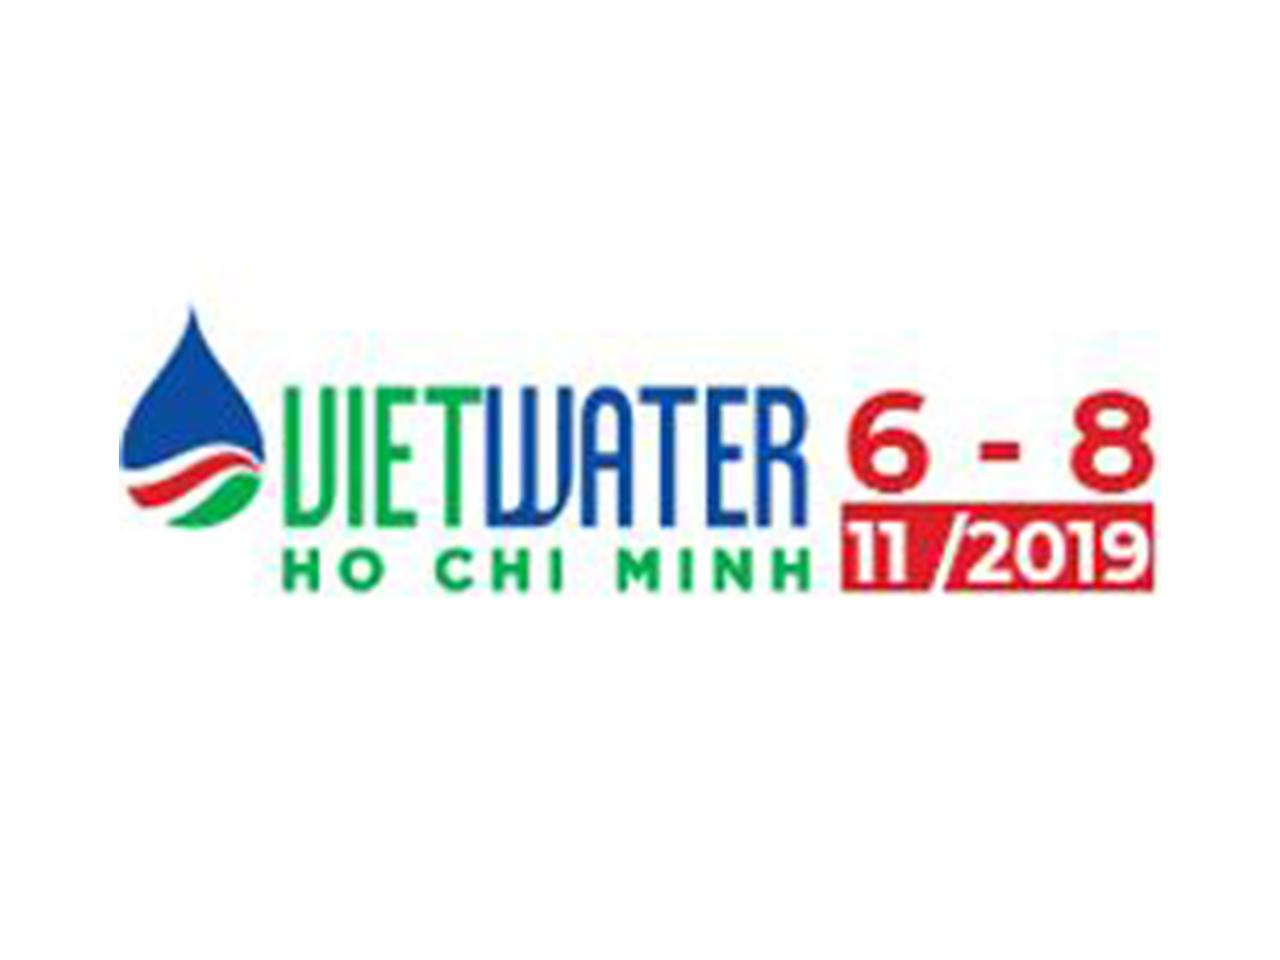 VUCICO COOPERATS WITH 2 PARTNERS TO JOIN VIETWATER 2019